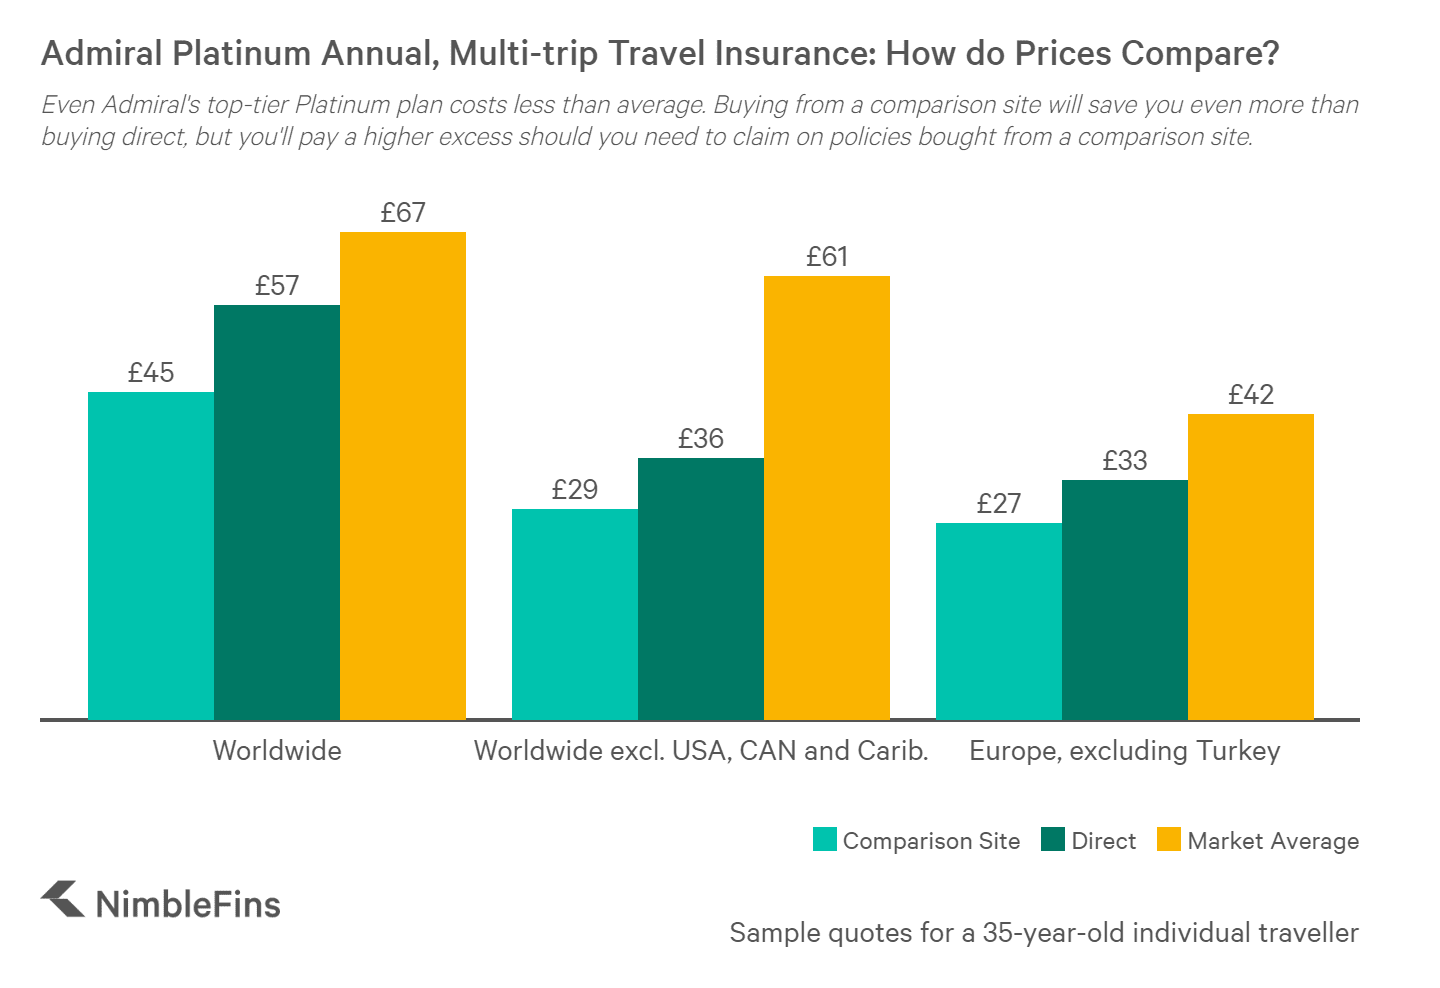 chart showing Admiral single-trip travel insurance prices compared to market averages